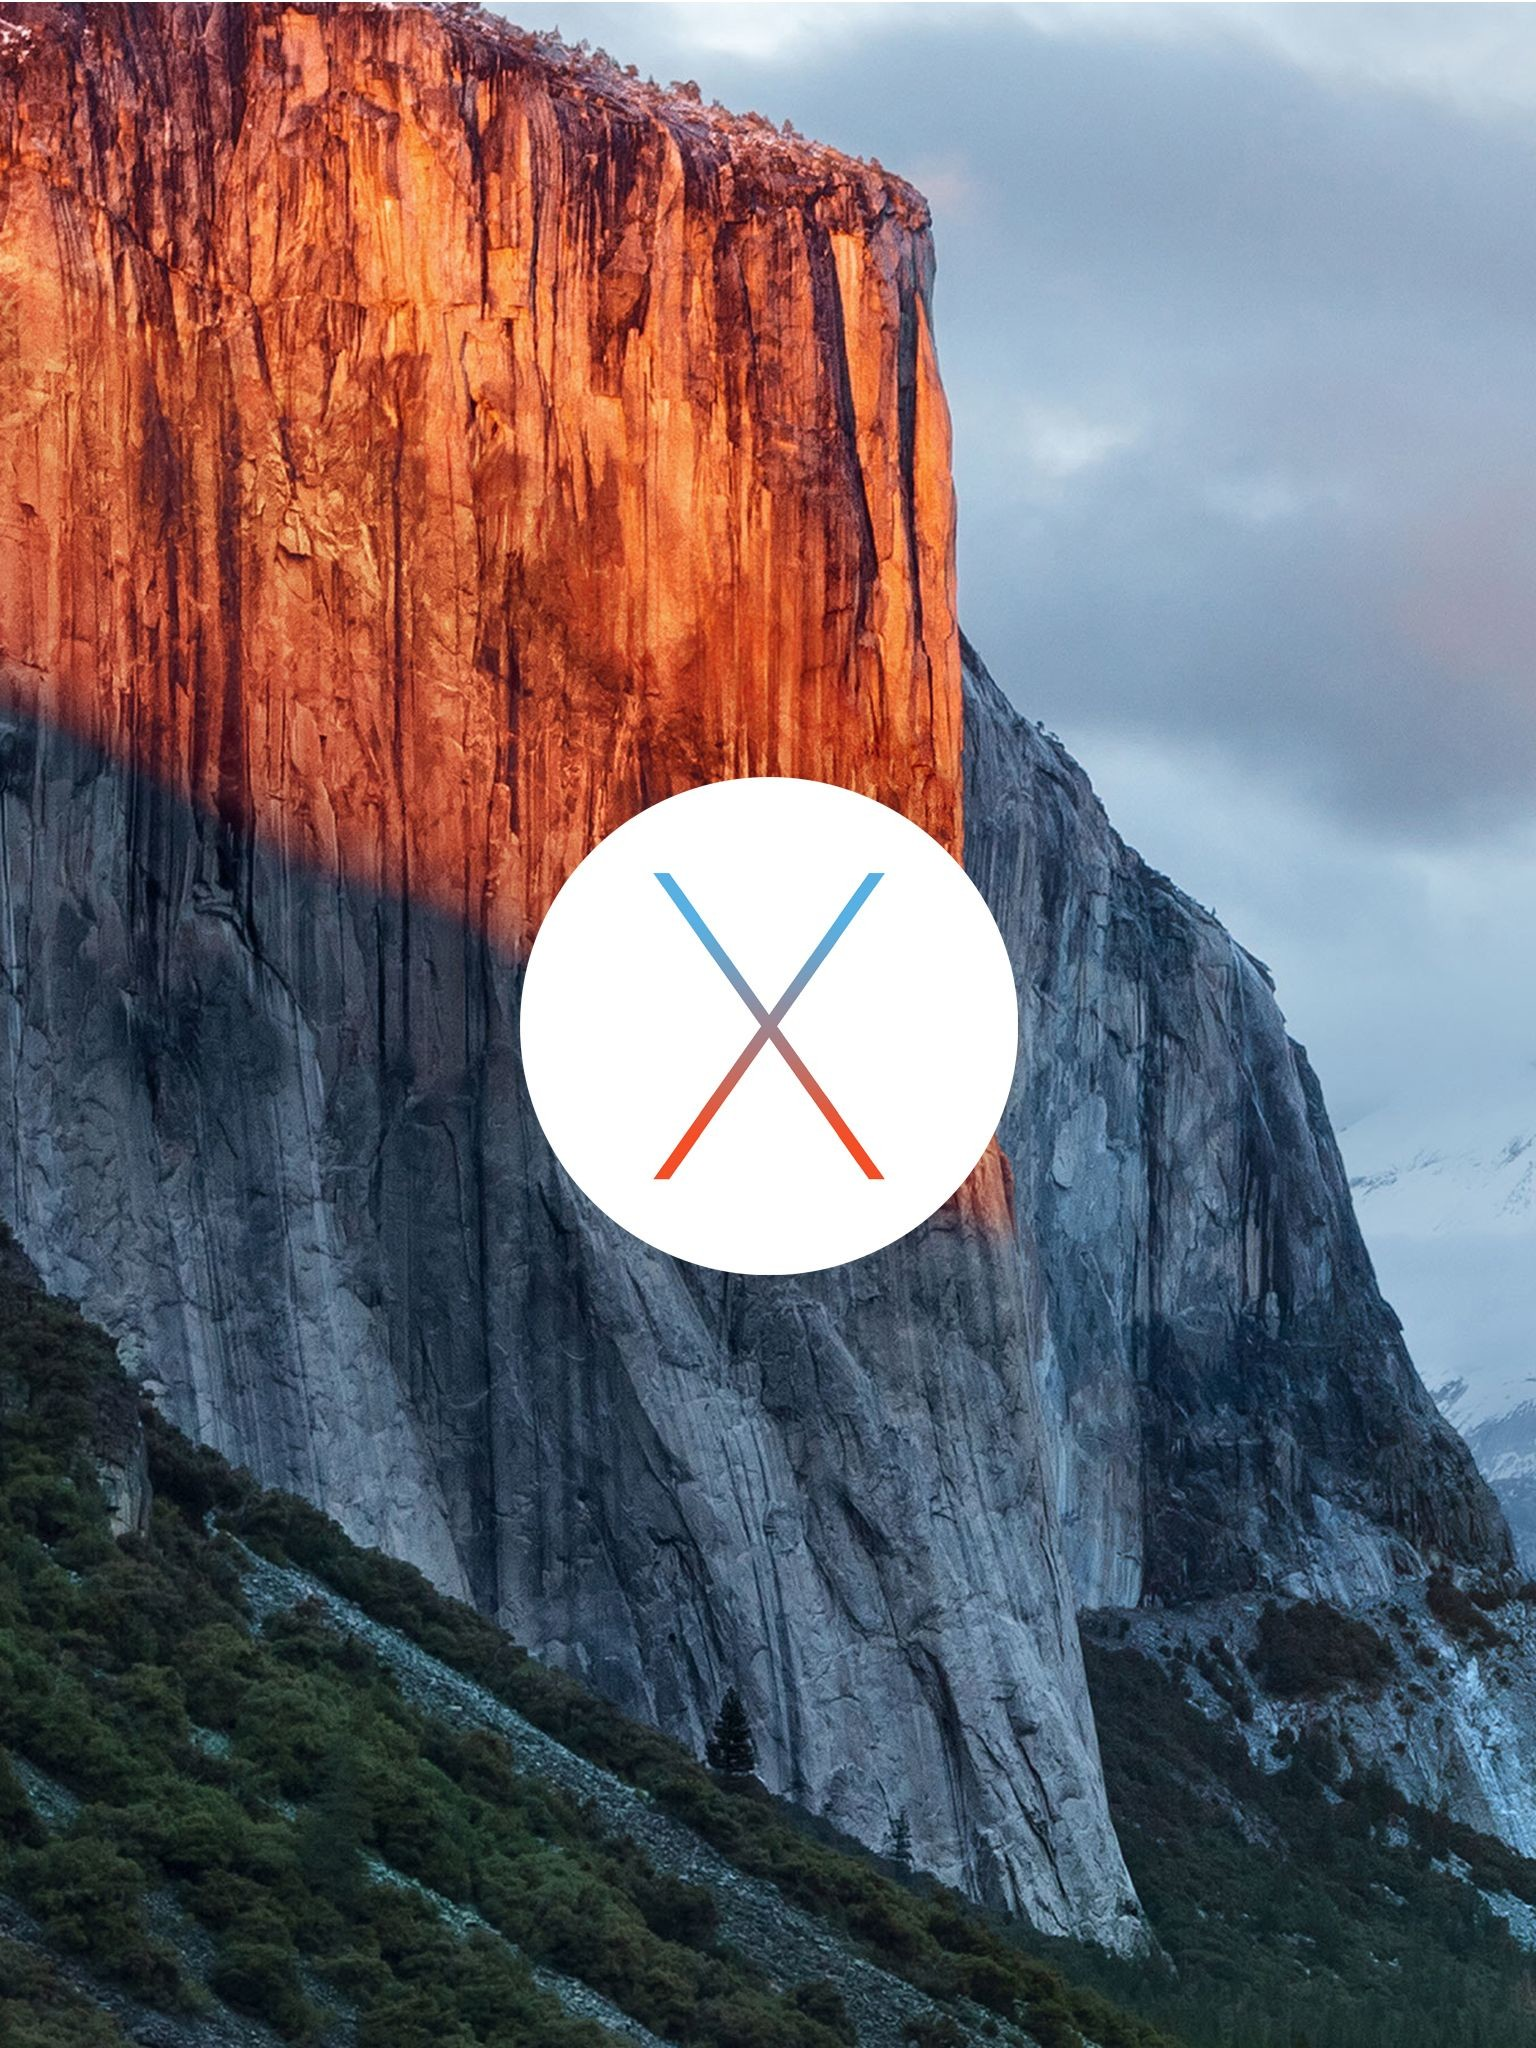 1536x2048 Iphone wallpaper os x yosemite - Download Desktop 2880 X 1800 Ipad Iphone.  Download